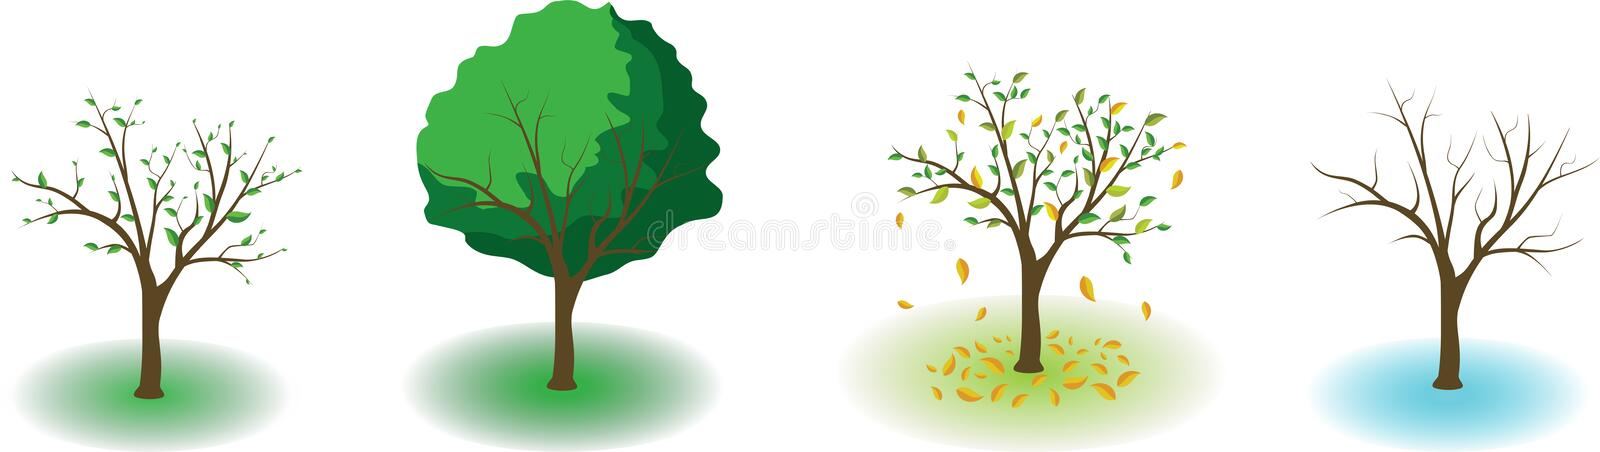 Four seasons. Tree shows the four seasons of the year stock illustration